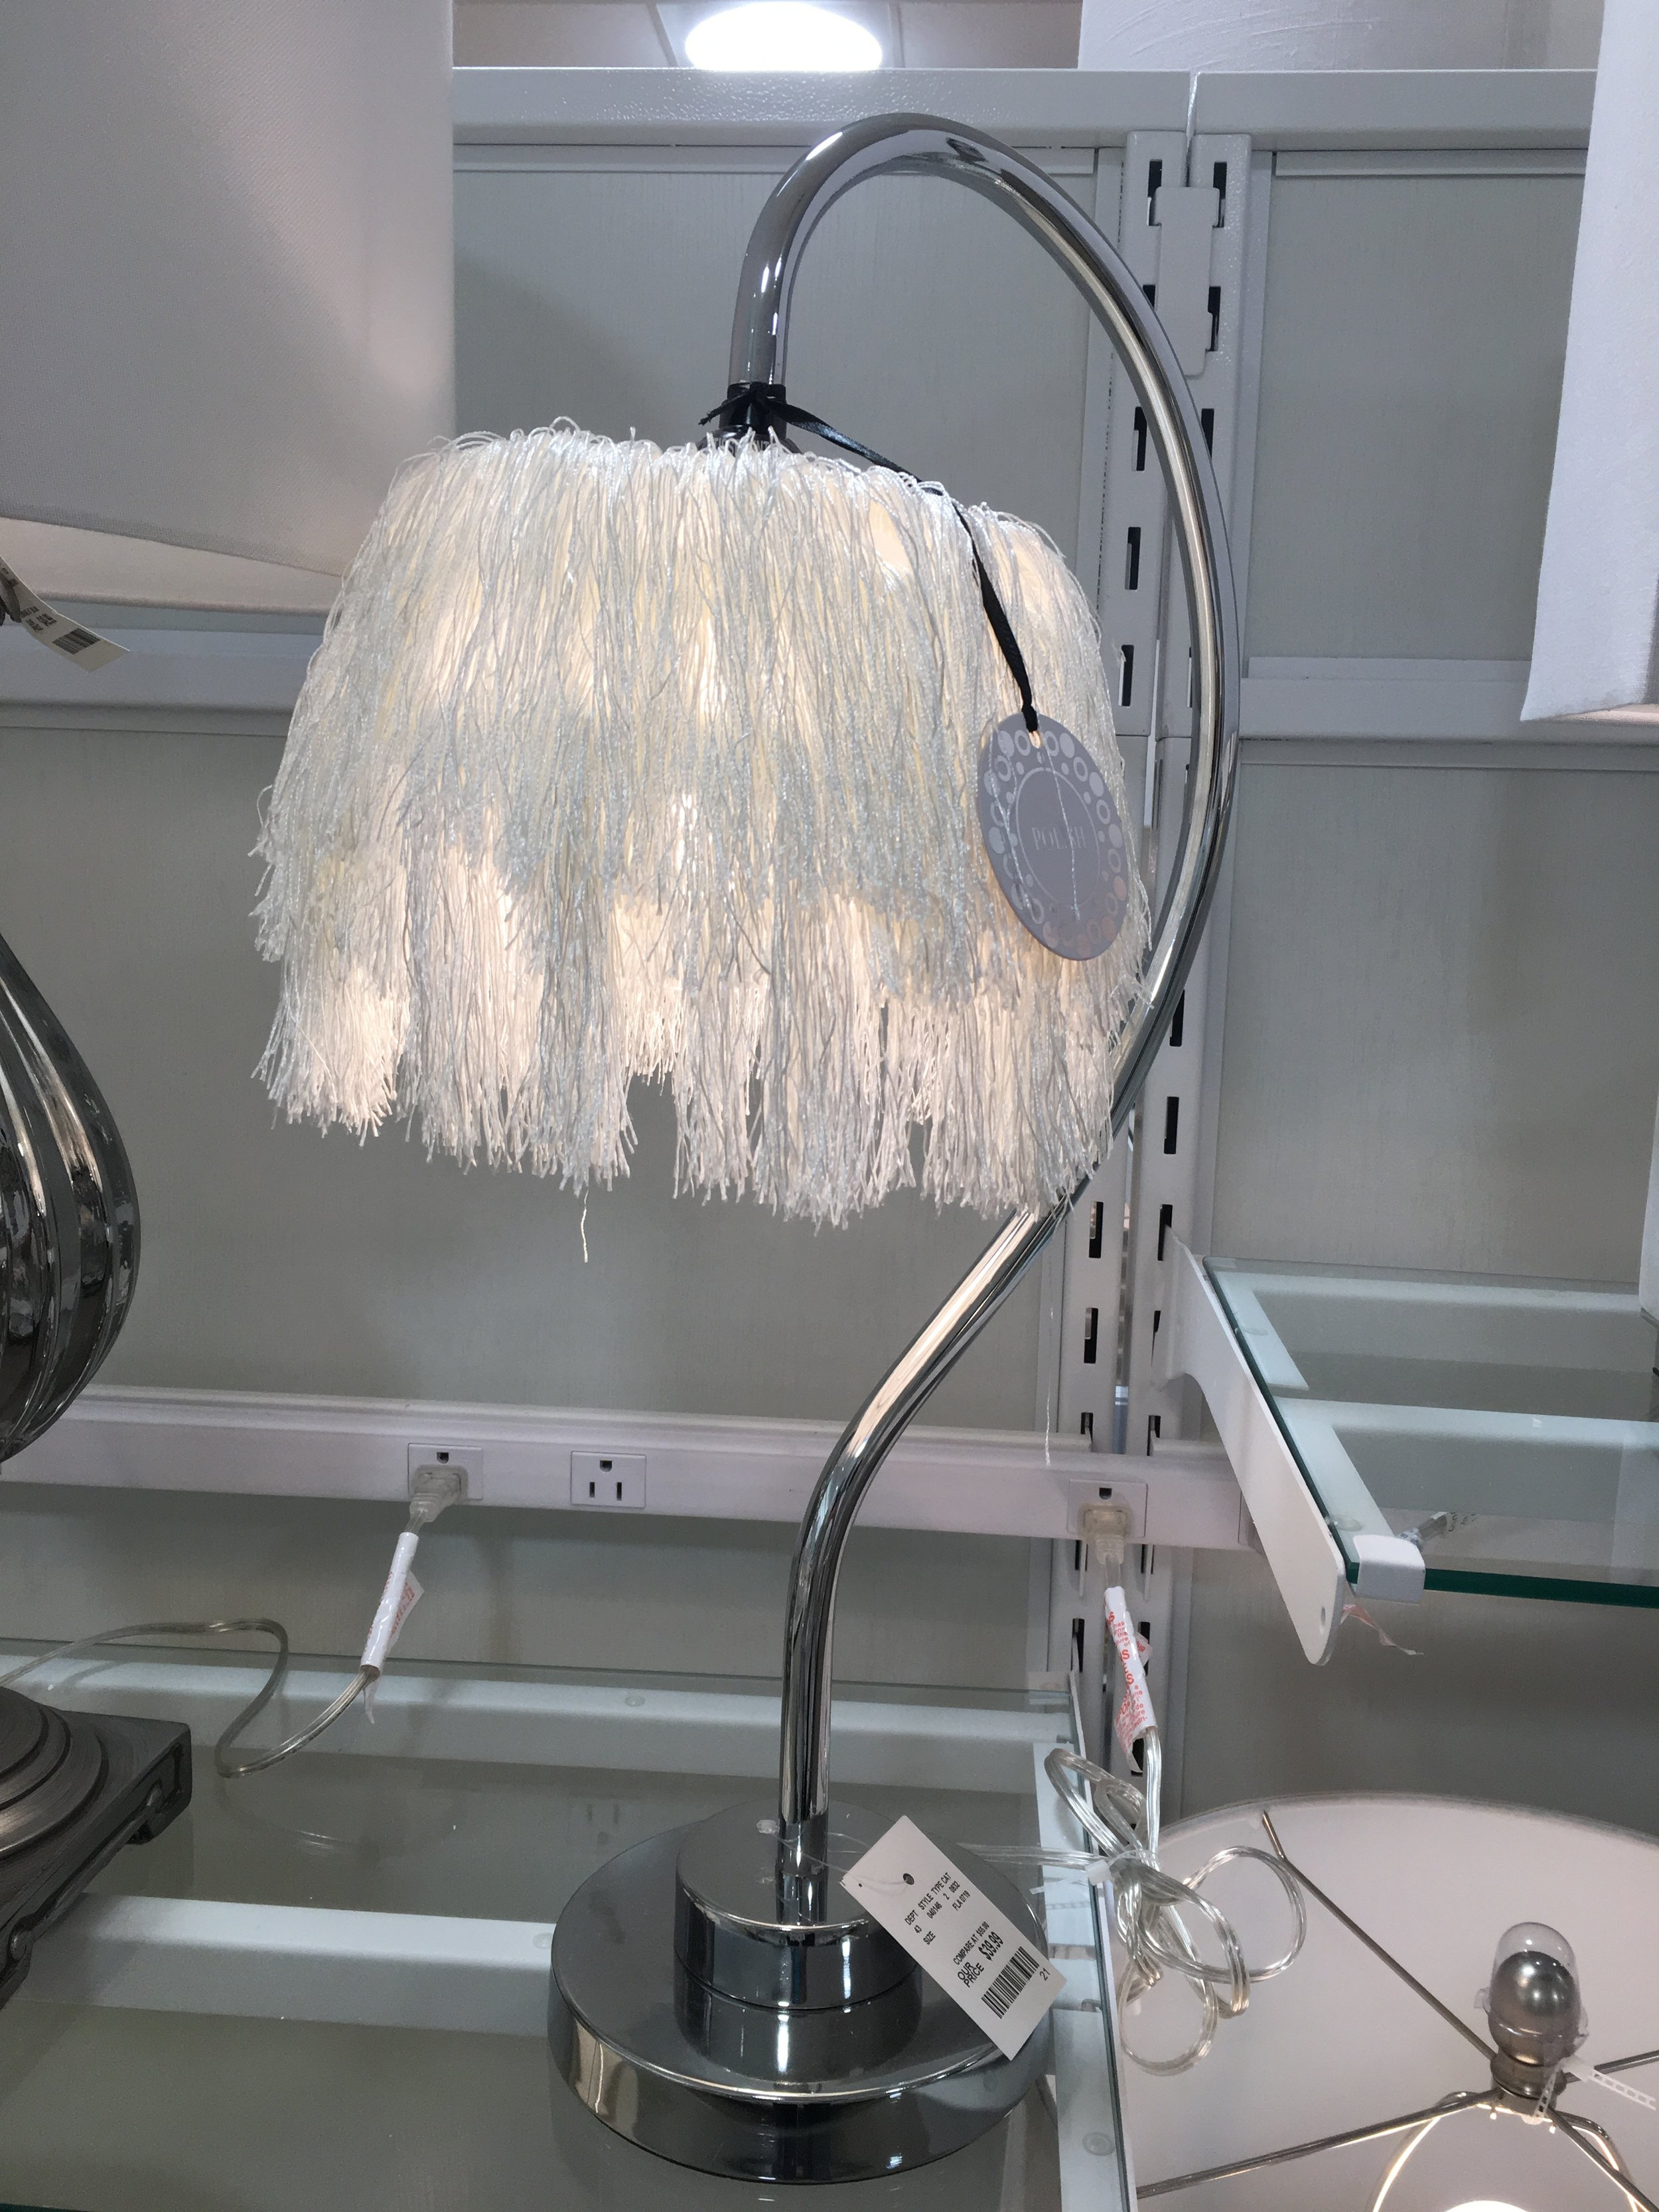 Okay, this one MIGHT have merit for a tween bedroom with a 20's vibe, but it looks like it needs a trim and some detangler!